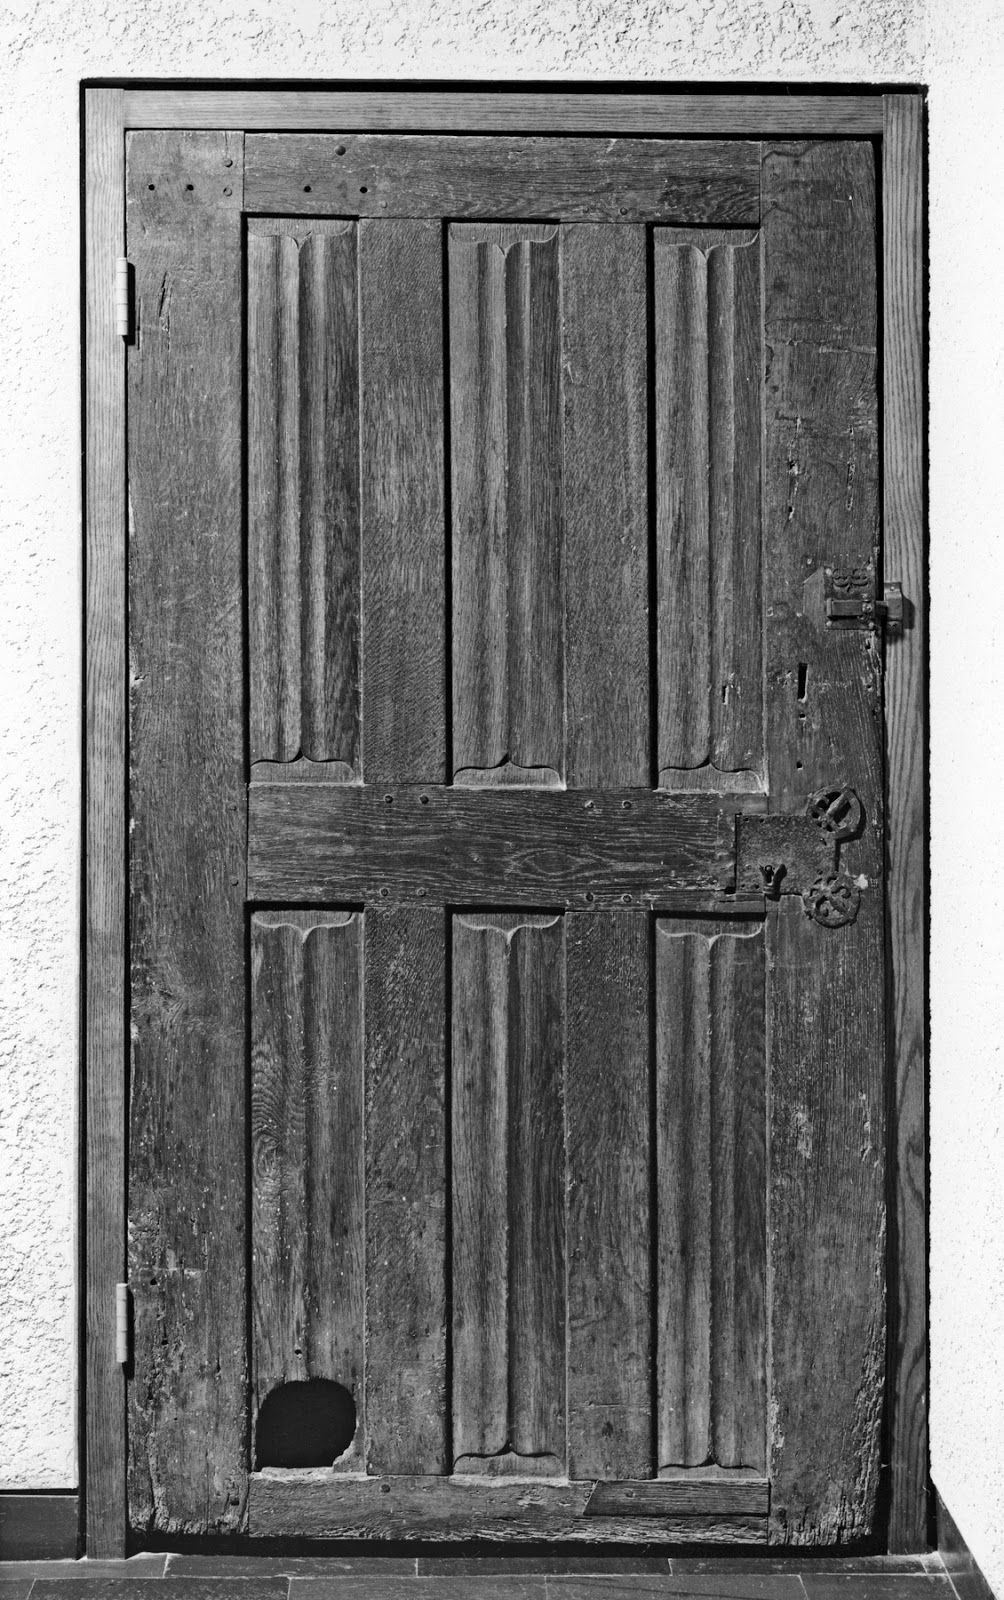 15th Century French Door With A Cat Door Cut Into It Public Domain